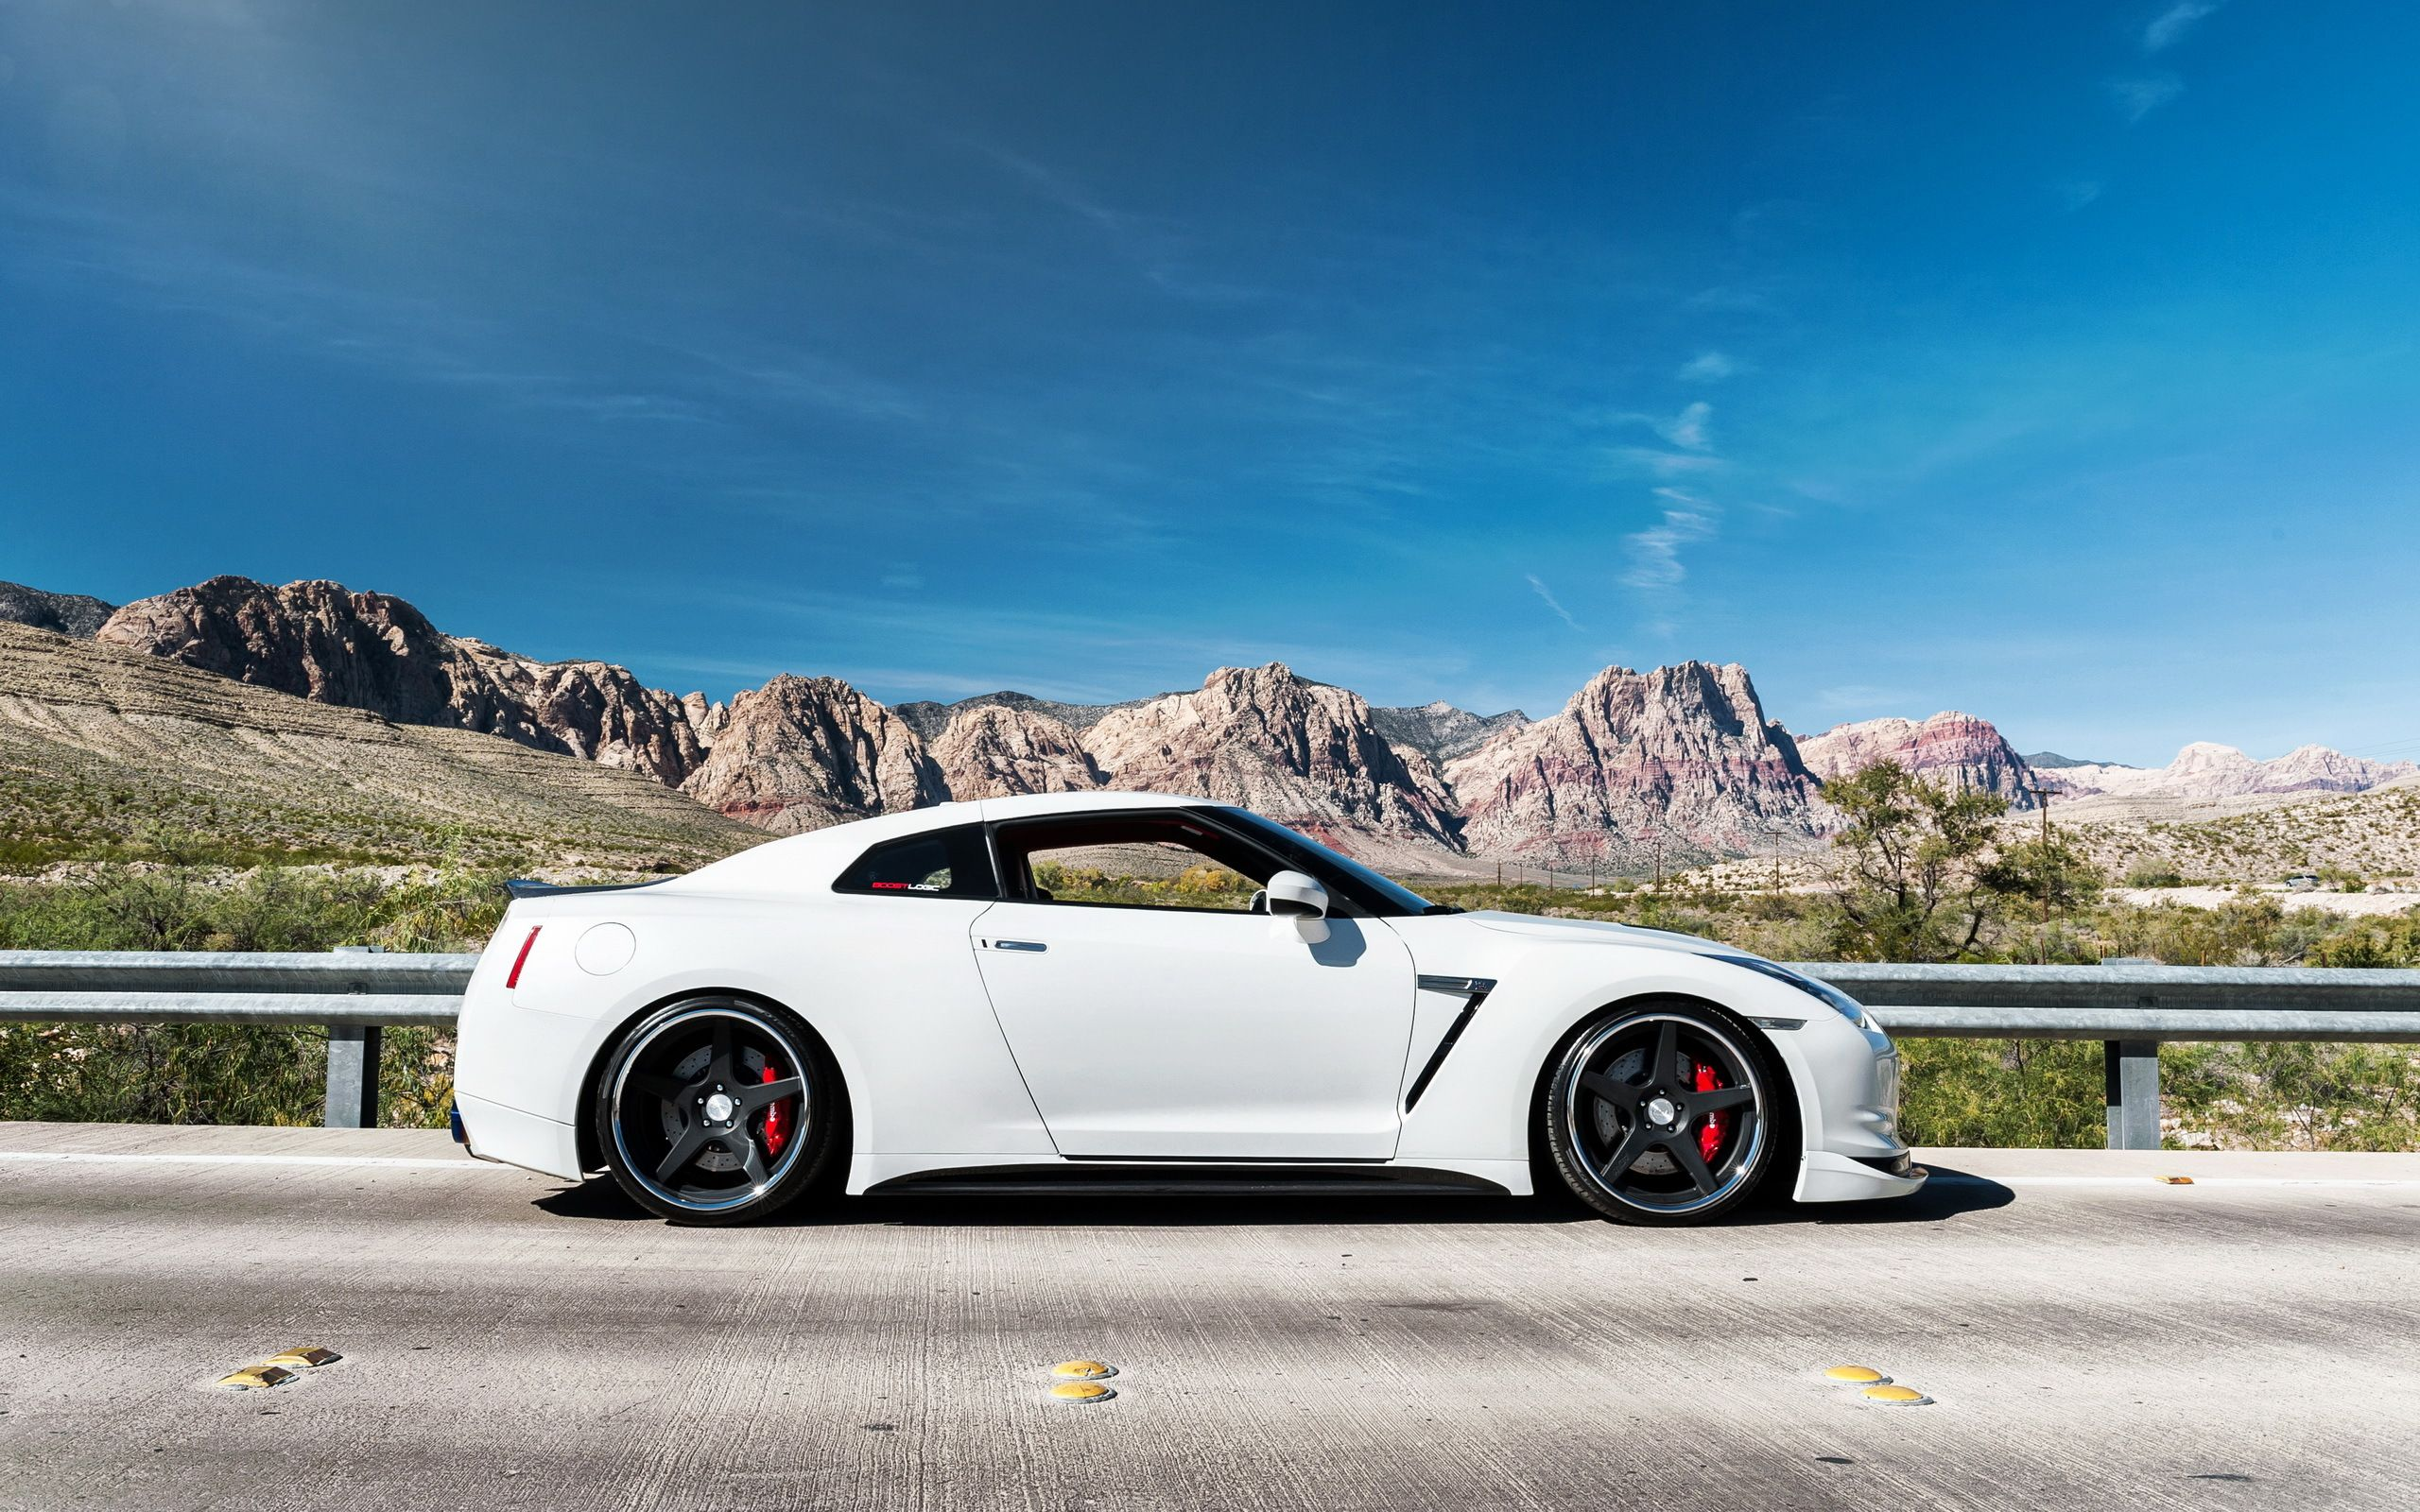 Cars Wallpaper White Nissan Gtr Wallpaper High Quality With High